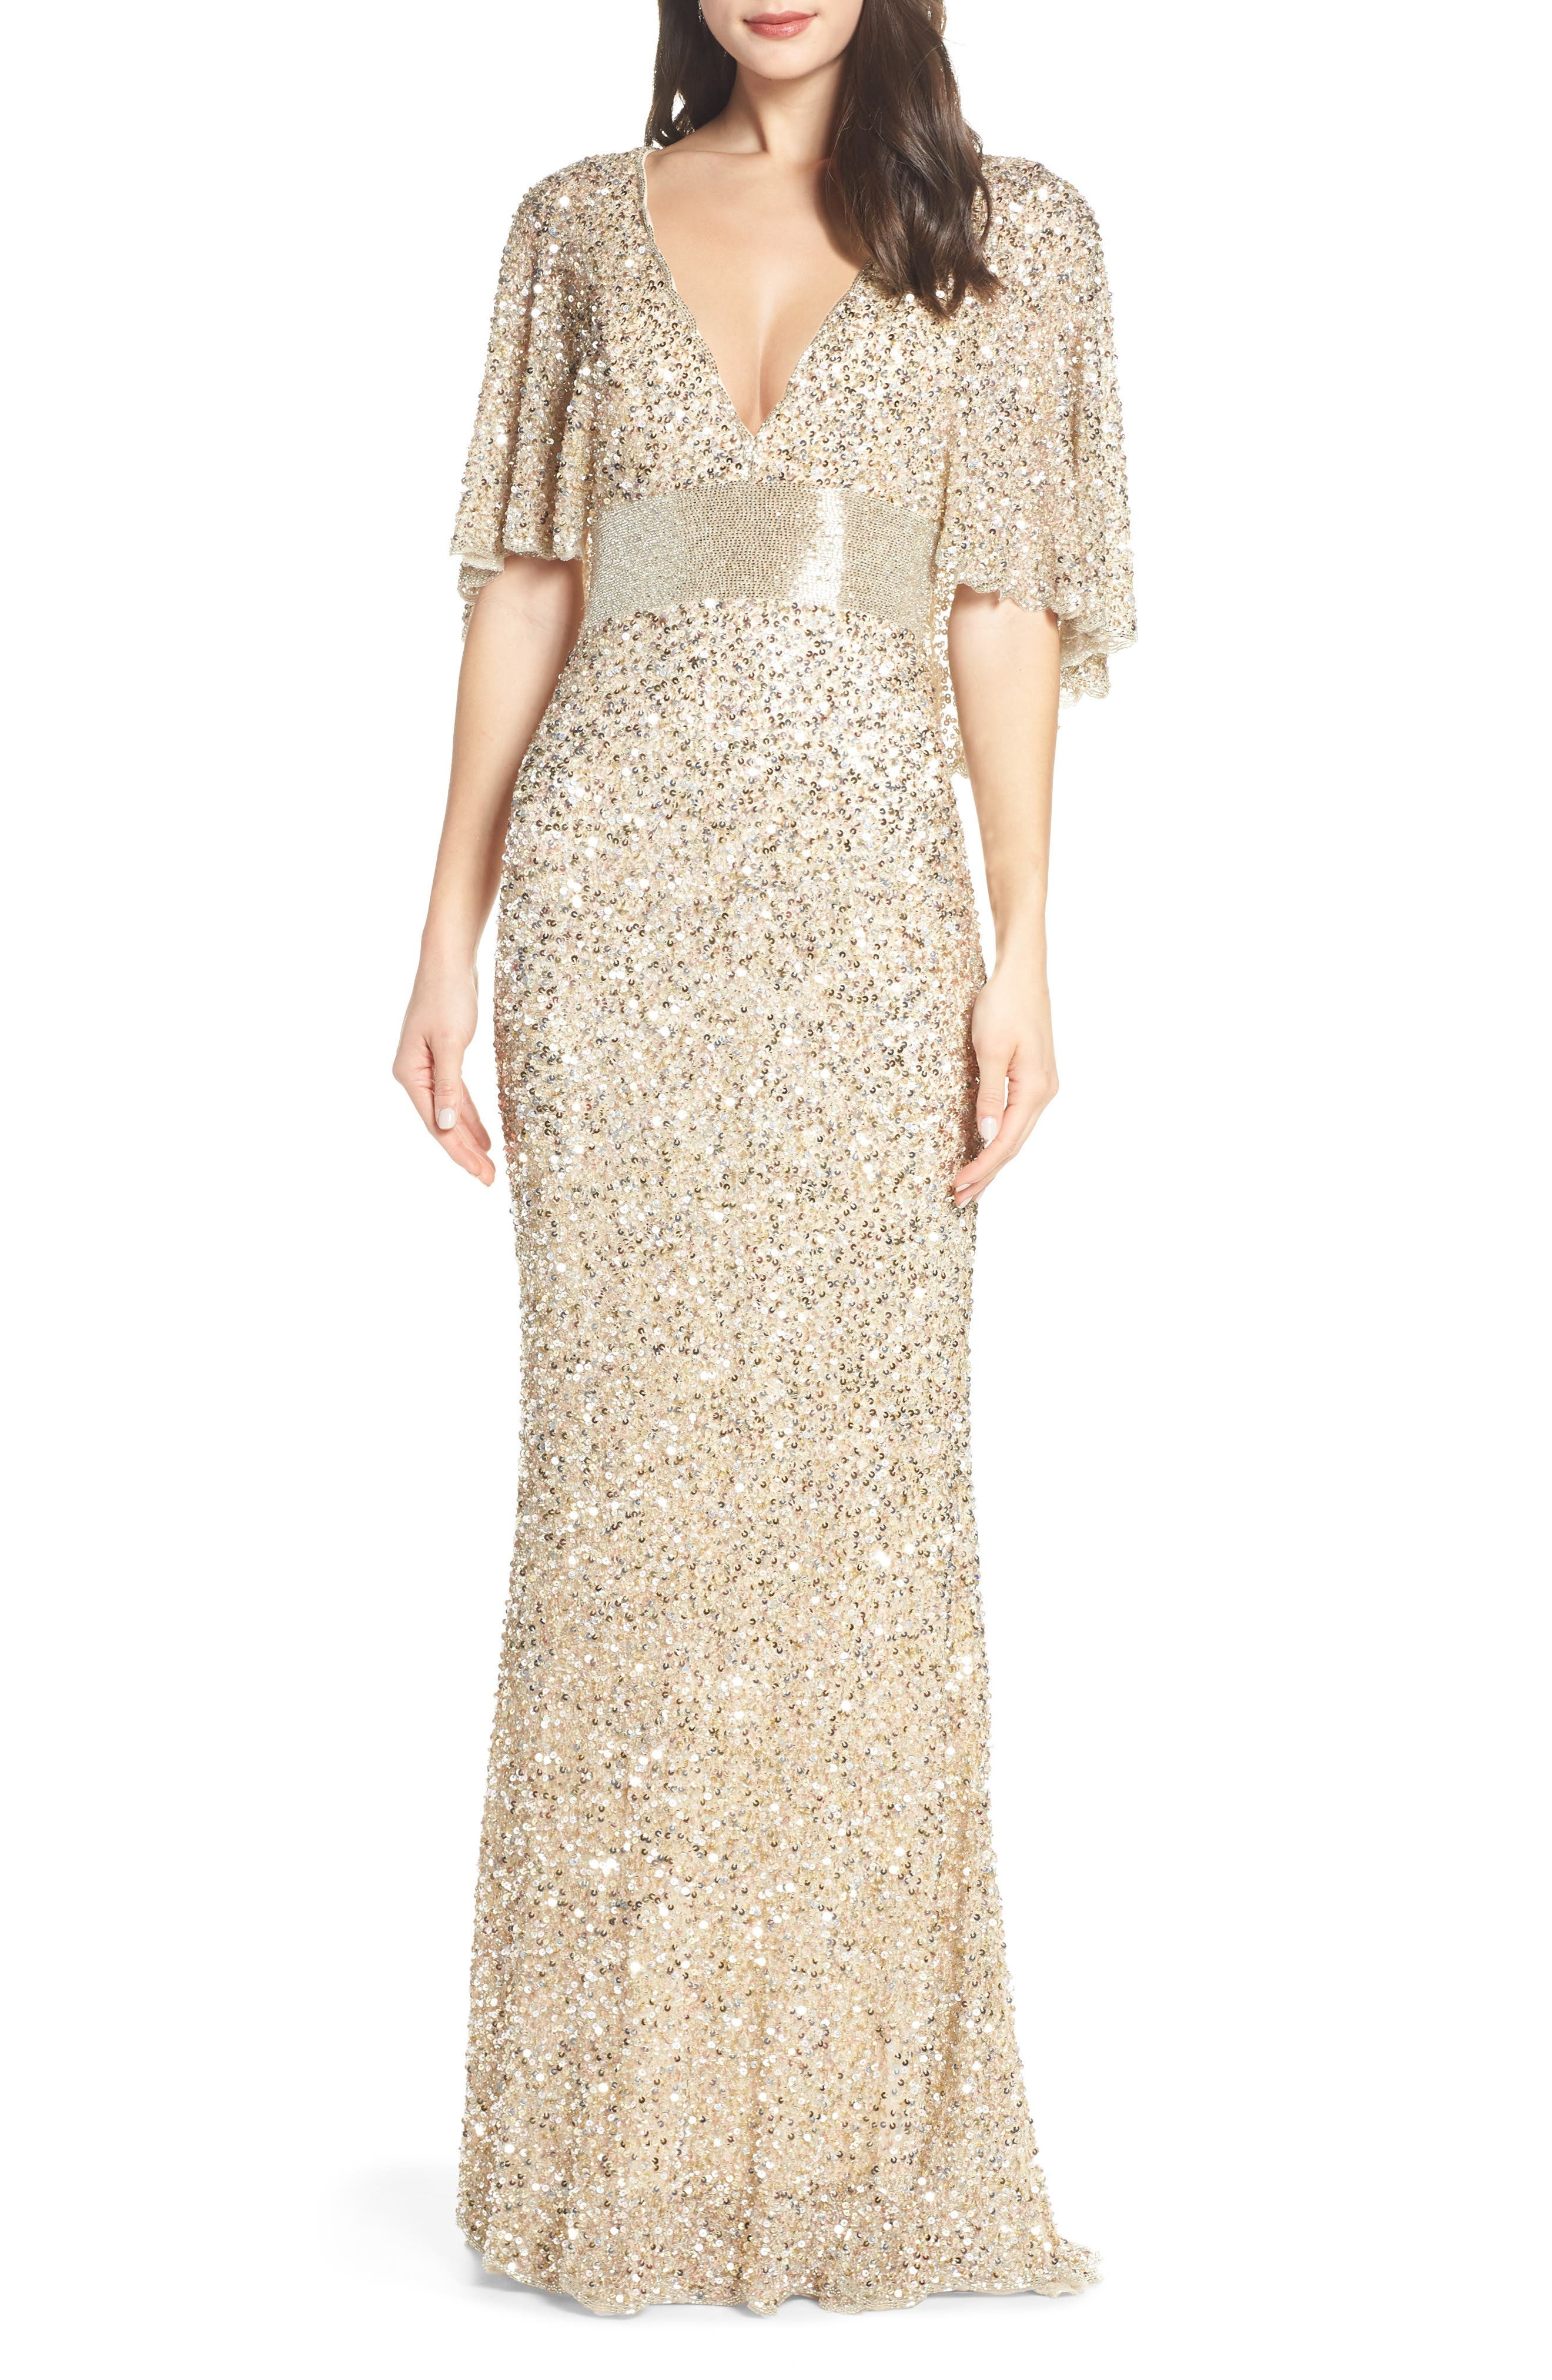 MAC DUGGAL, Beaded Capelet Sleeve Evening Dress, Main thumbnail 1, color, NUDE/ GOLD